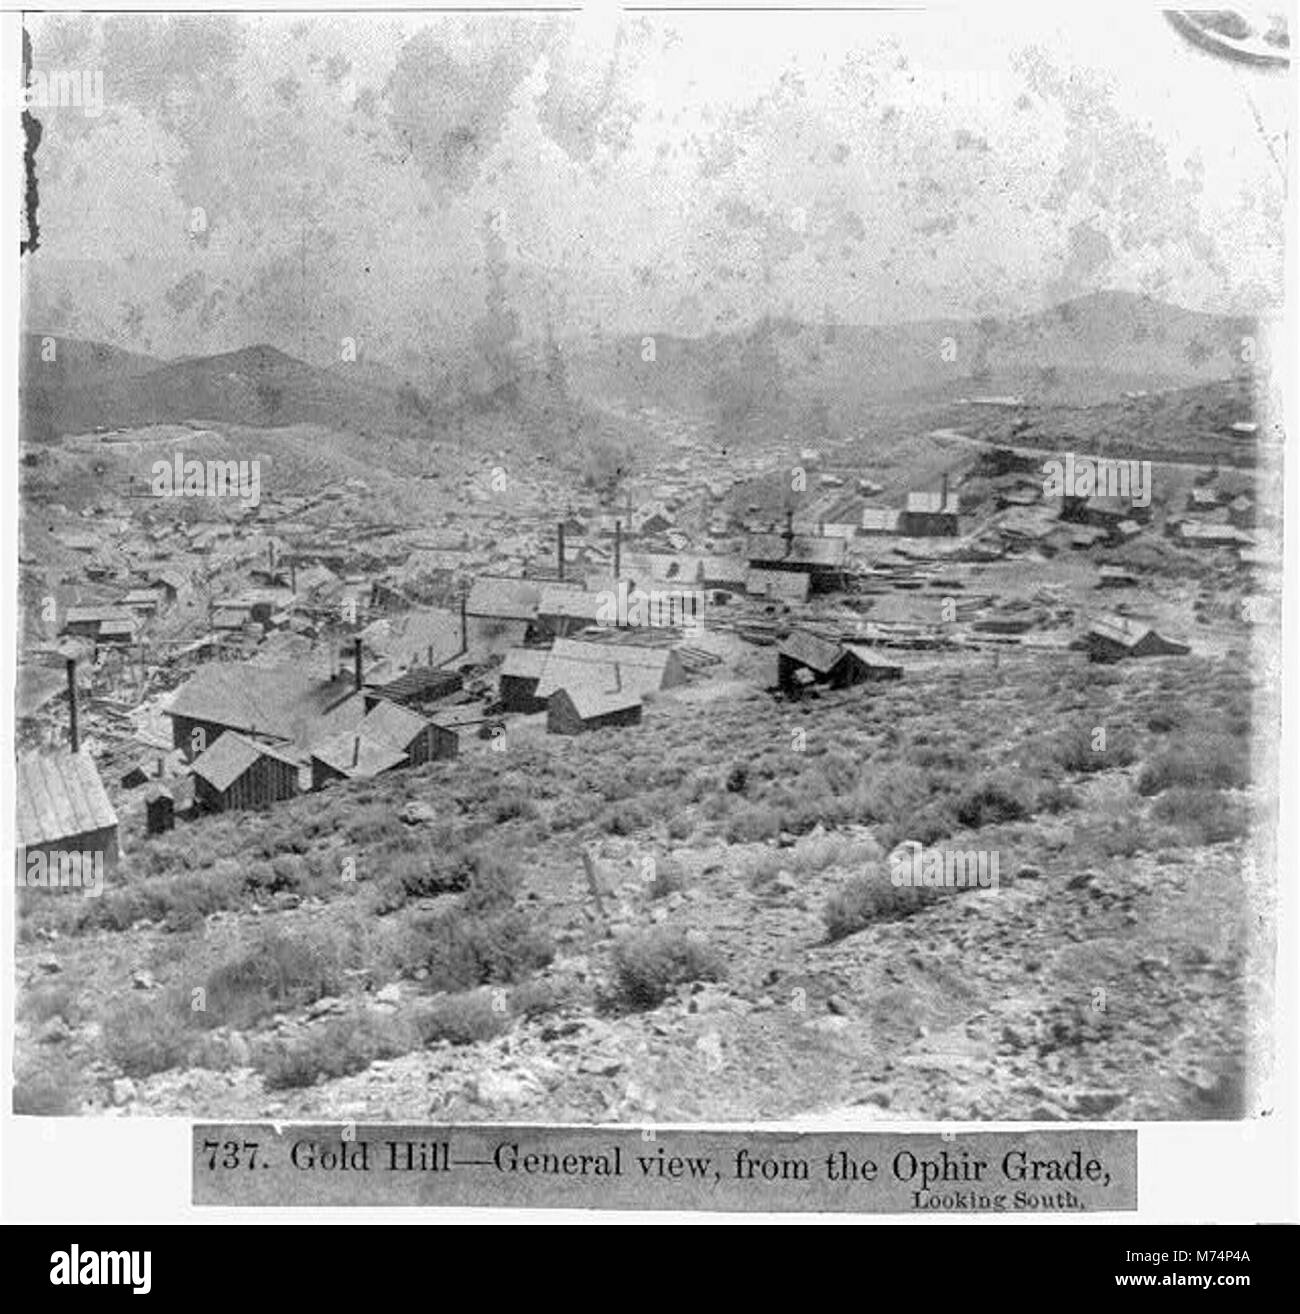 Gold Hill-General View, from the Ophir Grade, looking South LCCN2002723115 - Stock Image